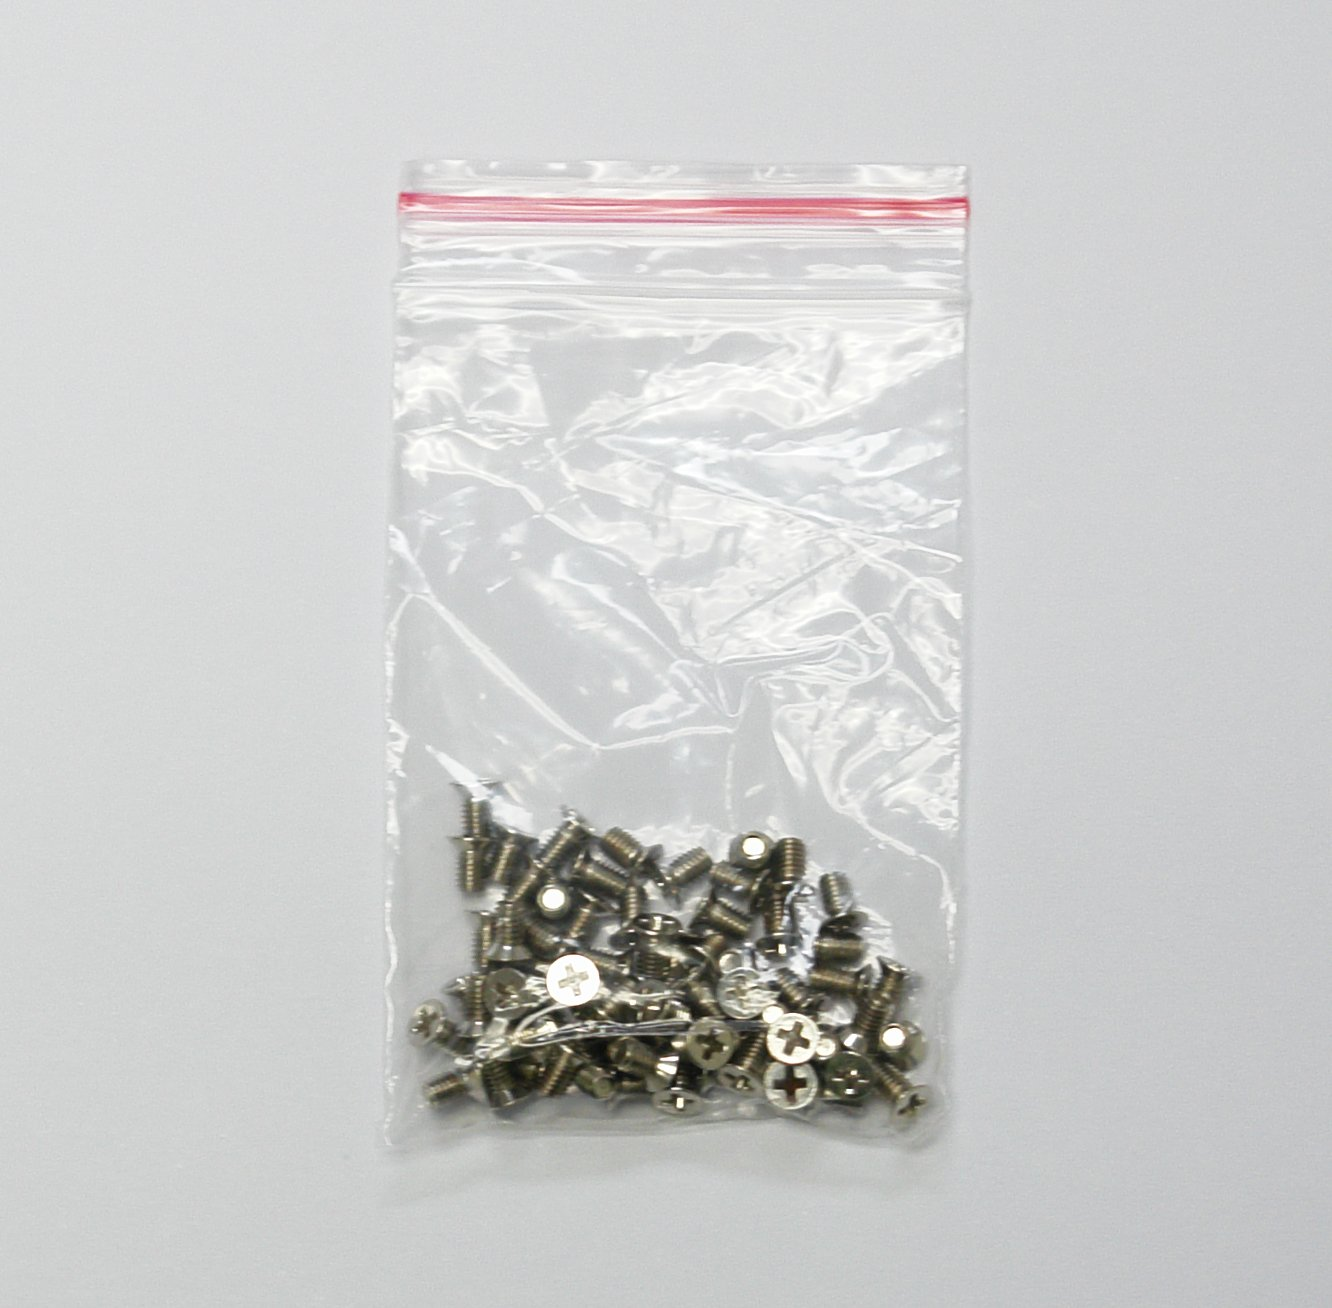 "2.5"" drives mounting screws for drive trays of NORCO RPC-4224, RPC-4220, RPC-4020, RPC-4216, RPC-4116, RPC-3216, RPC-3116, RPC-2212, RPC-2106, RPC-2208, RPC-2008, RPC-1204......"